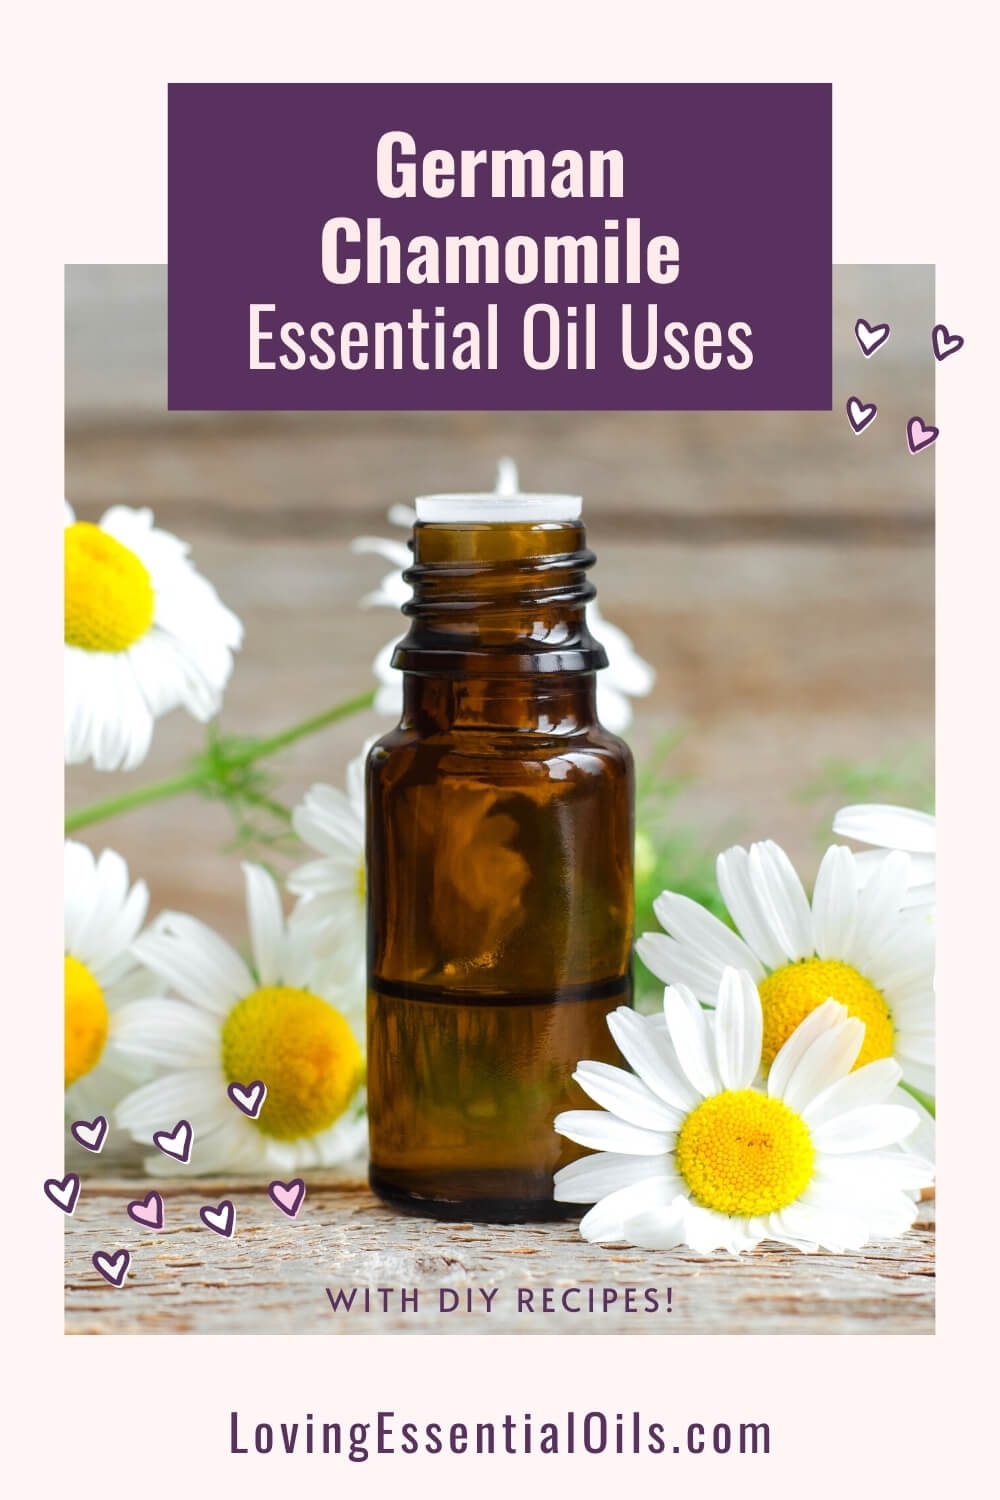 German Chamomile Essential Oil Uses and Benefits by Loving Essential Oils